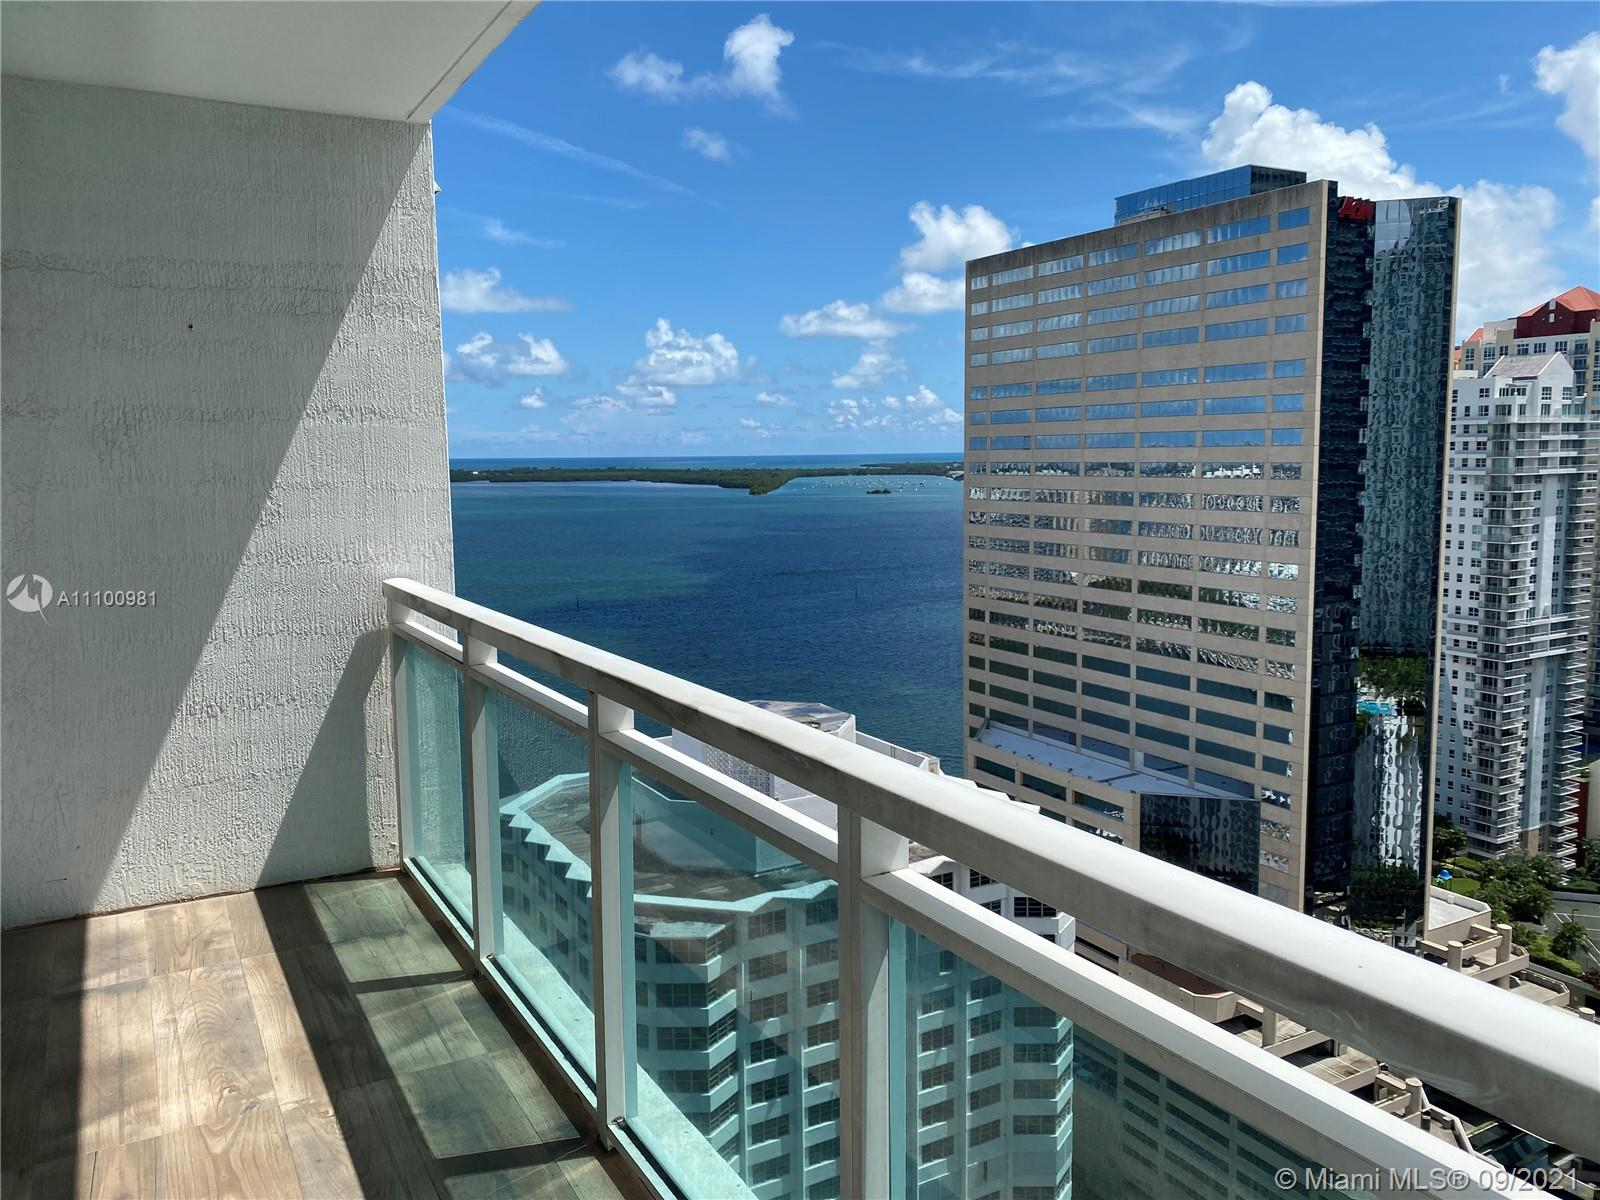 Condo For Rent at THE PLAZA 851 BRICKELL CO